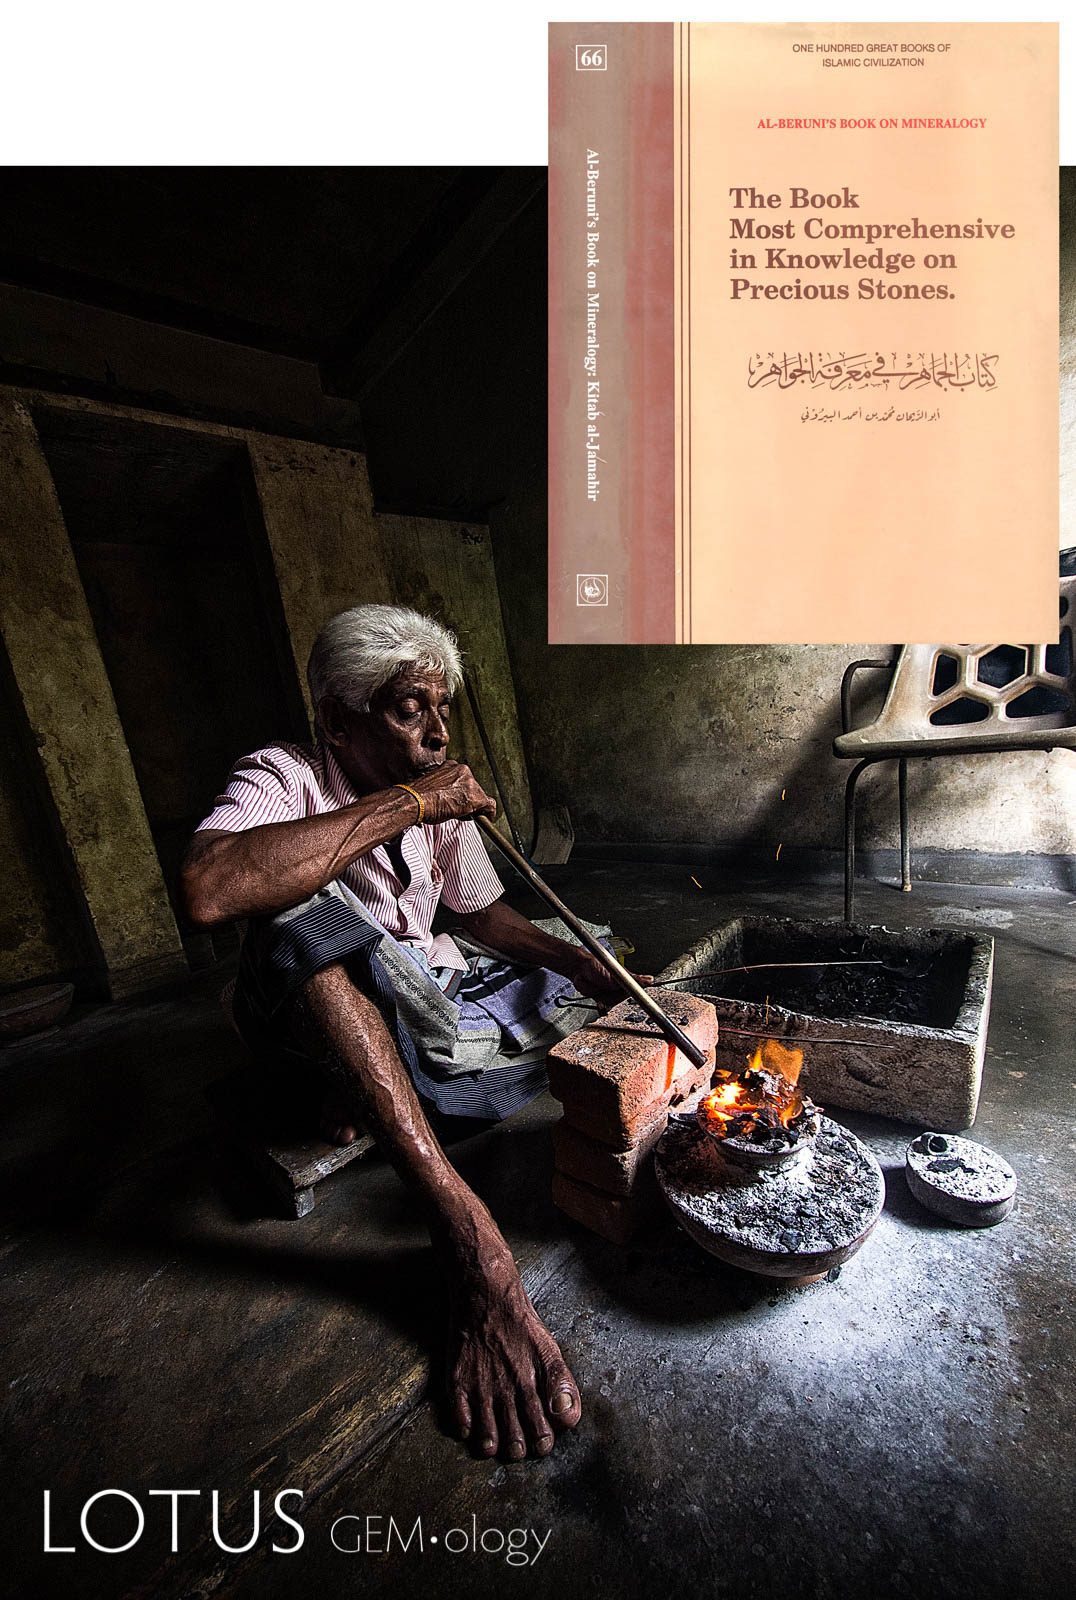 Blowpipe heating of ruby to remove bluish overtones was accurately described by al Beruni (inset) over a thousand years ago. Photo: E. Billie Hughes in Ratnapura, Sri Lanka, 2015. Click on the photo for a larger image.